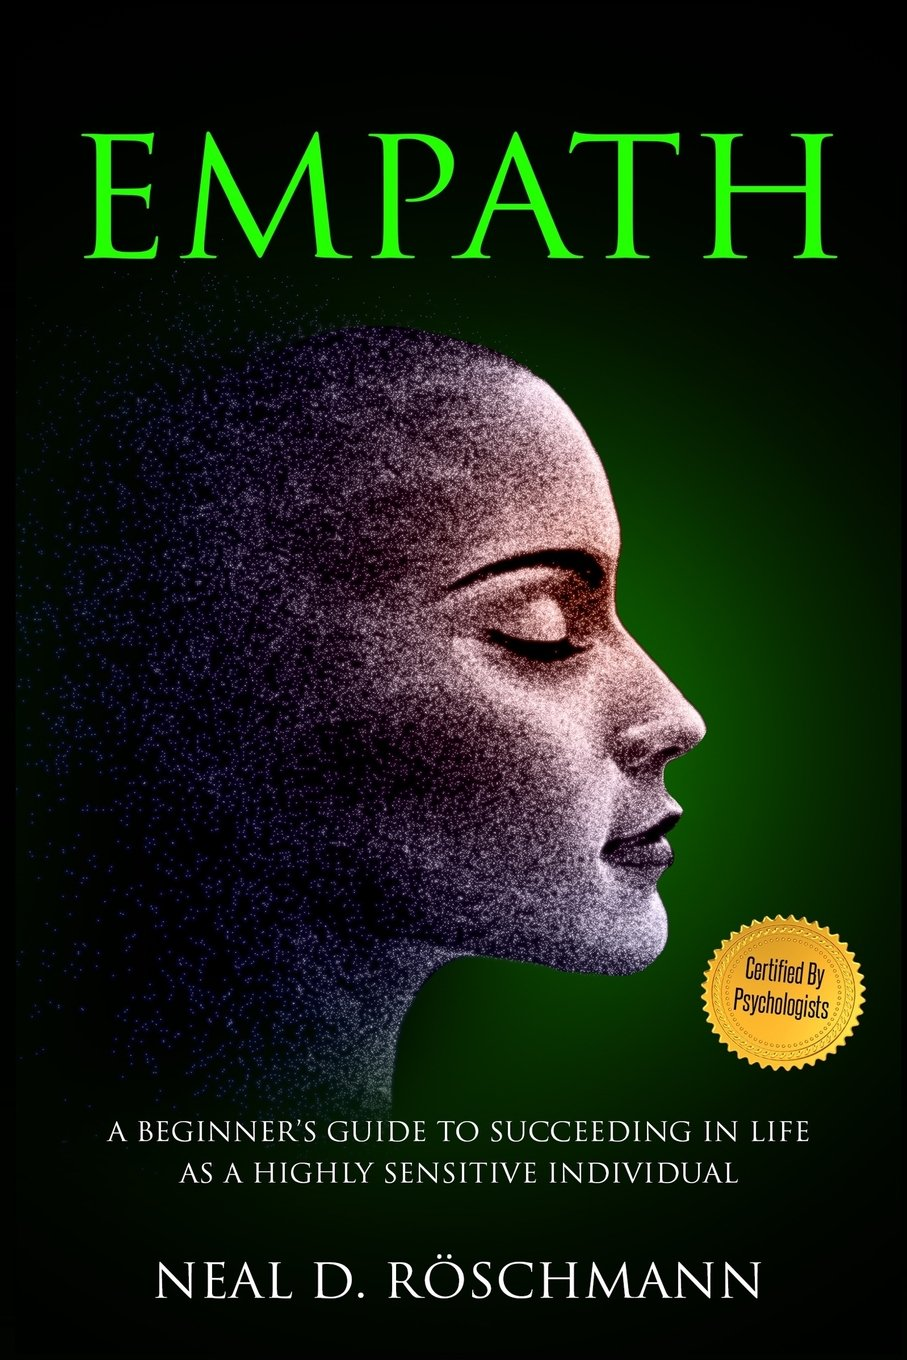 Empath: A Beginner's Guide to Succeeding in Life as a Highly Sensitive Individual (Empowered Empath) (Volume 1) ebook